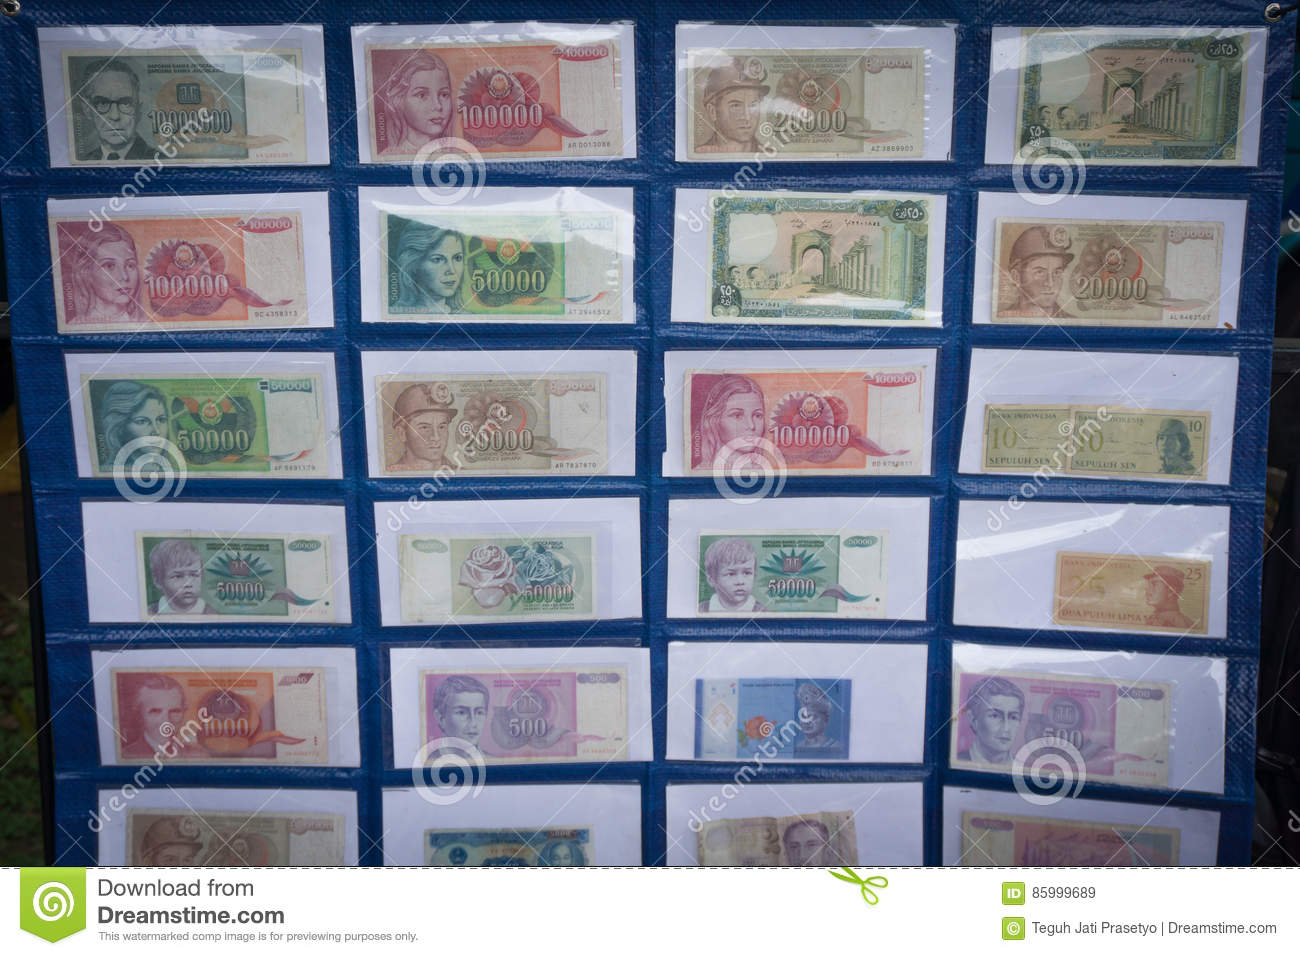 Collection of Indonesia`s paper money displayed in a museum photo taken in Bogor Indonesia